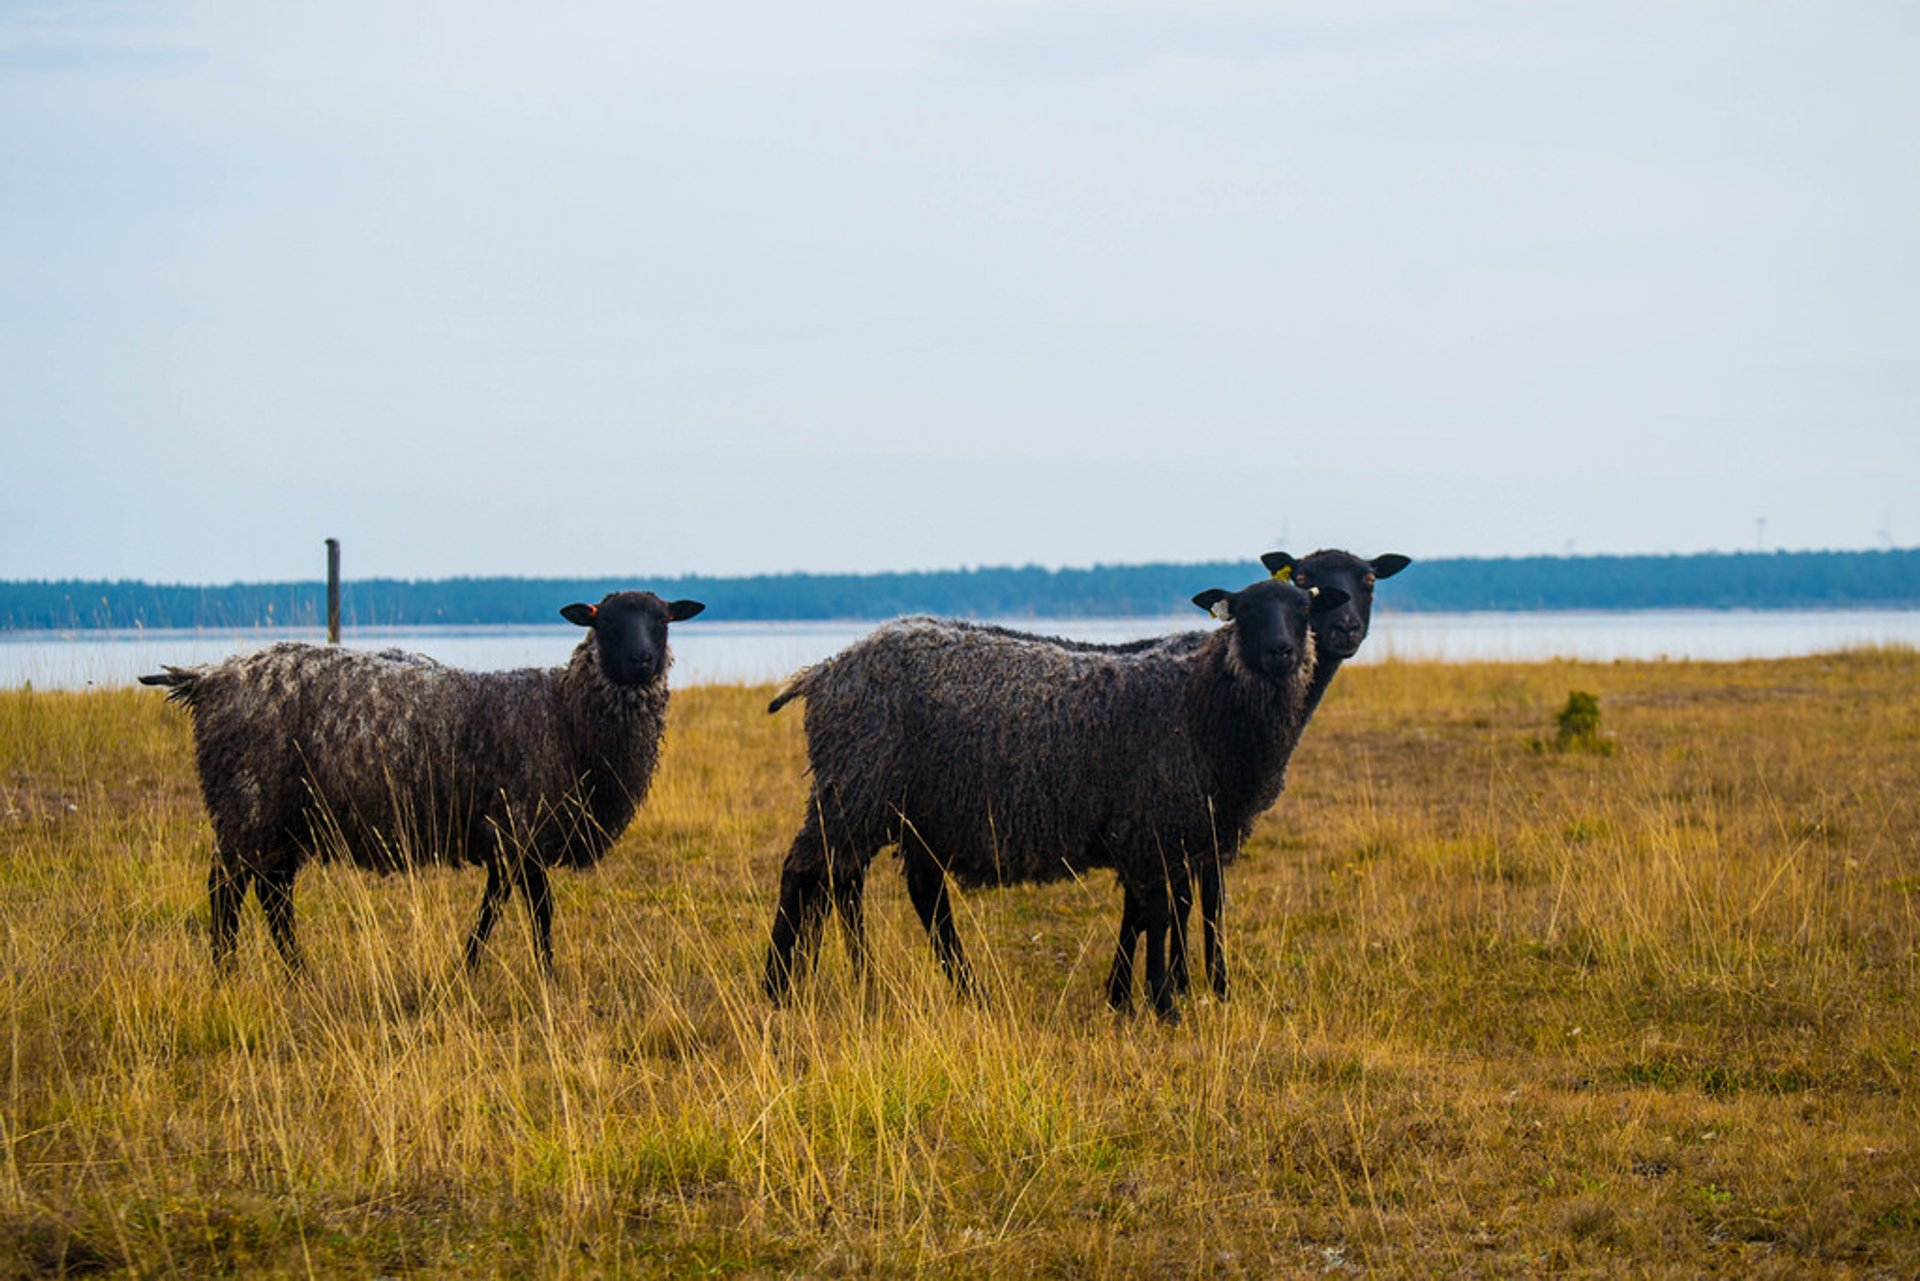 Gotland Pelt Sheep in Sweden 2020 - Best Time